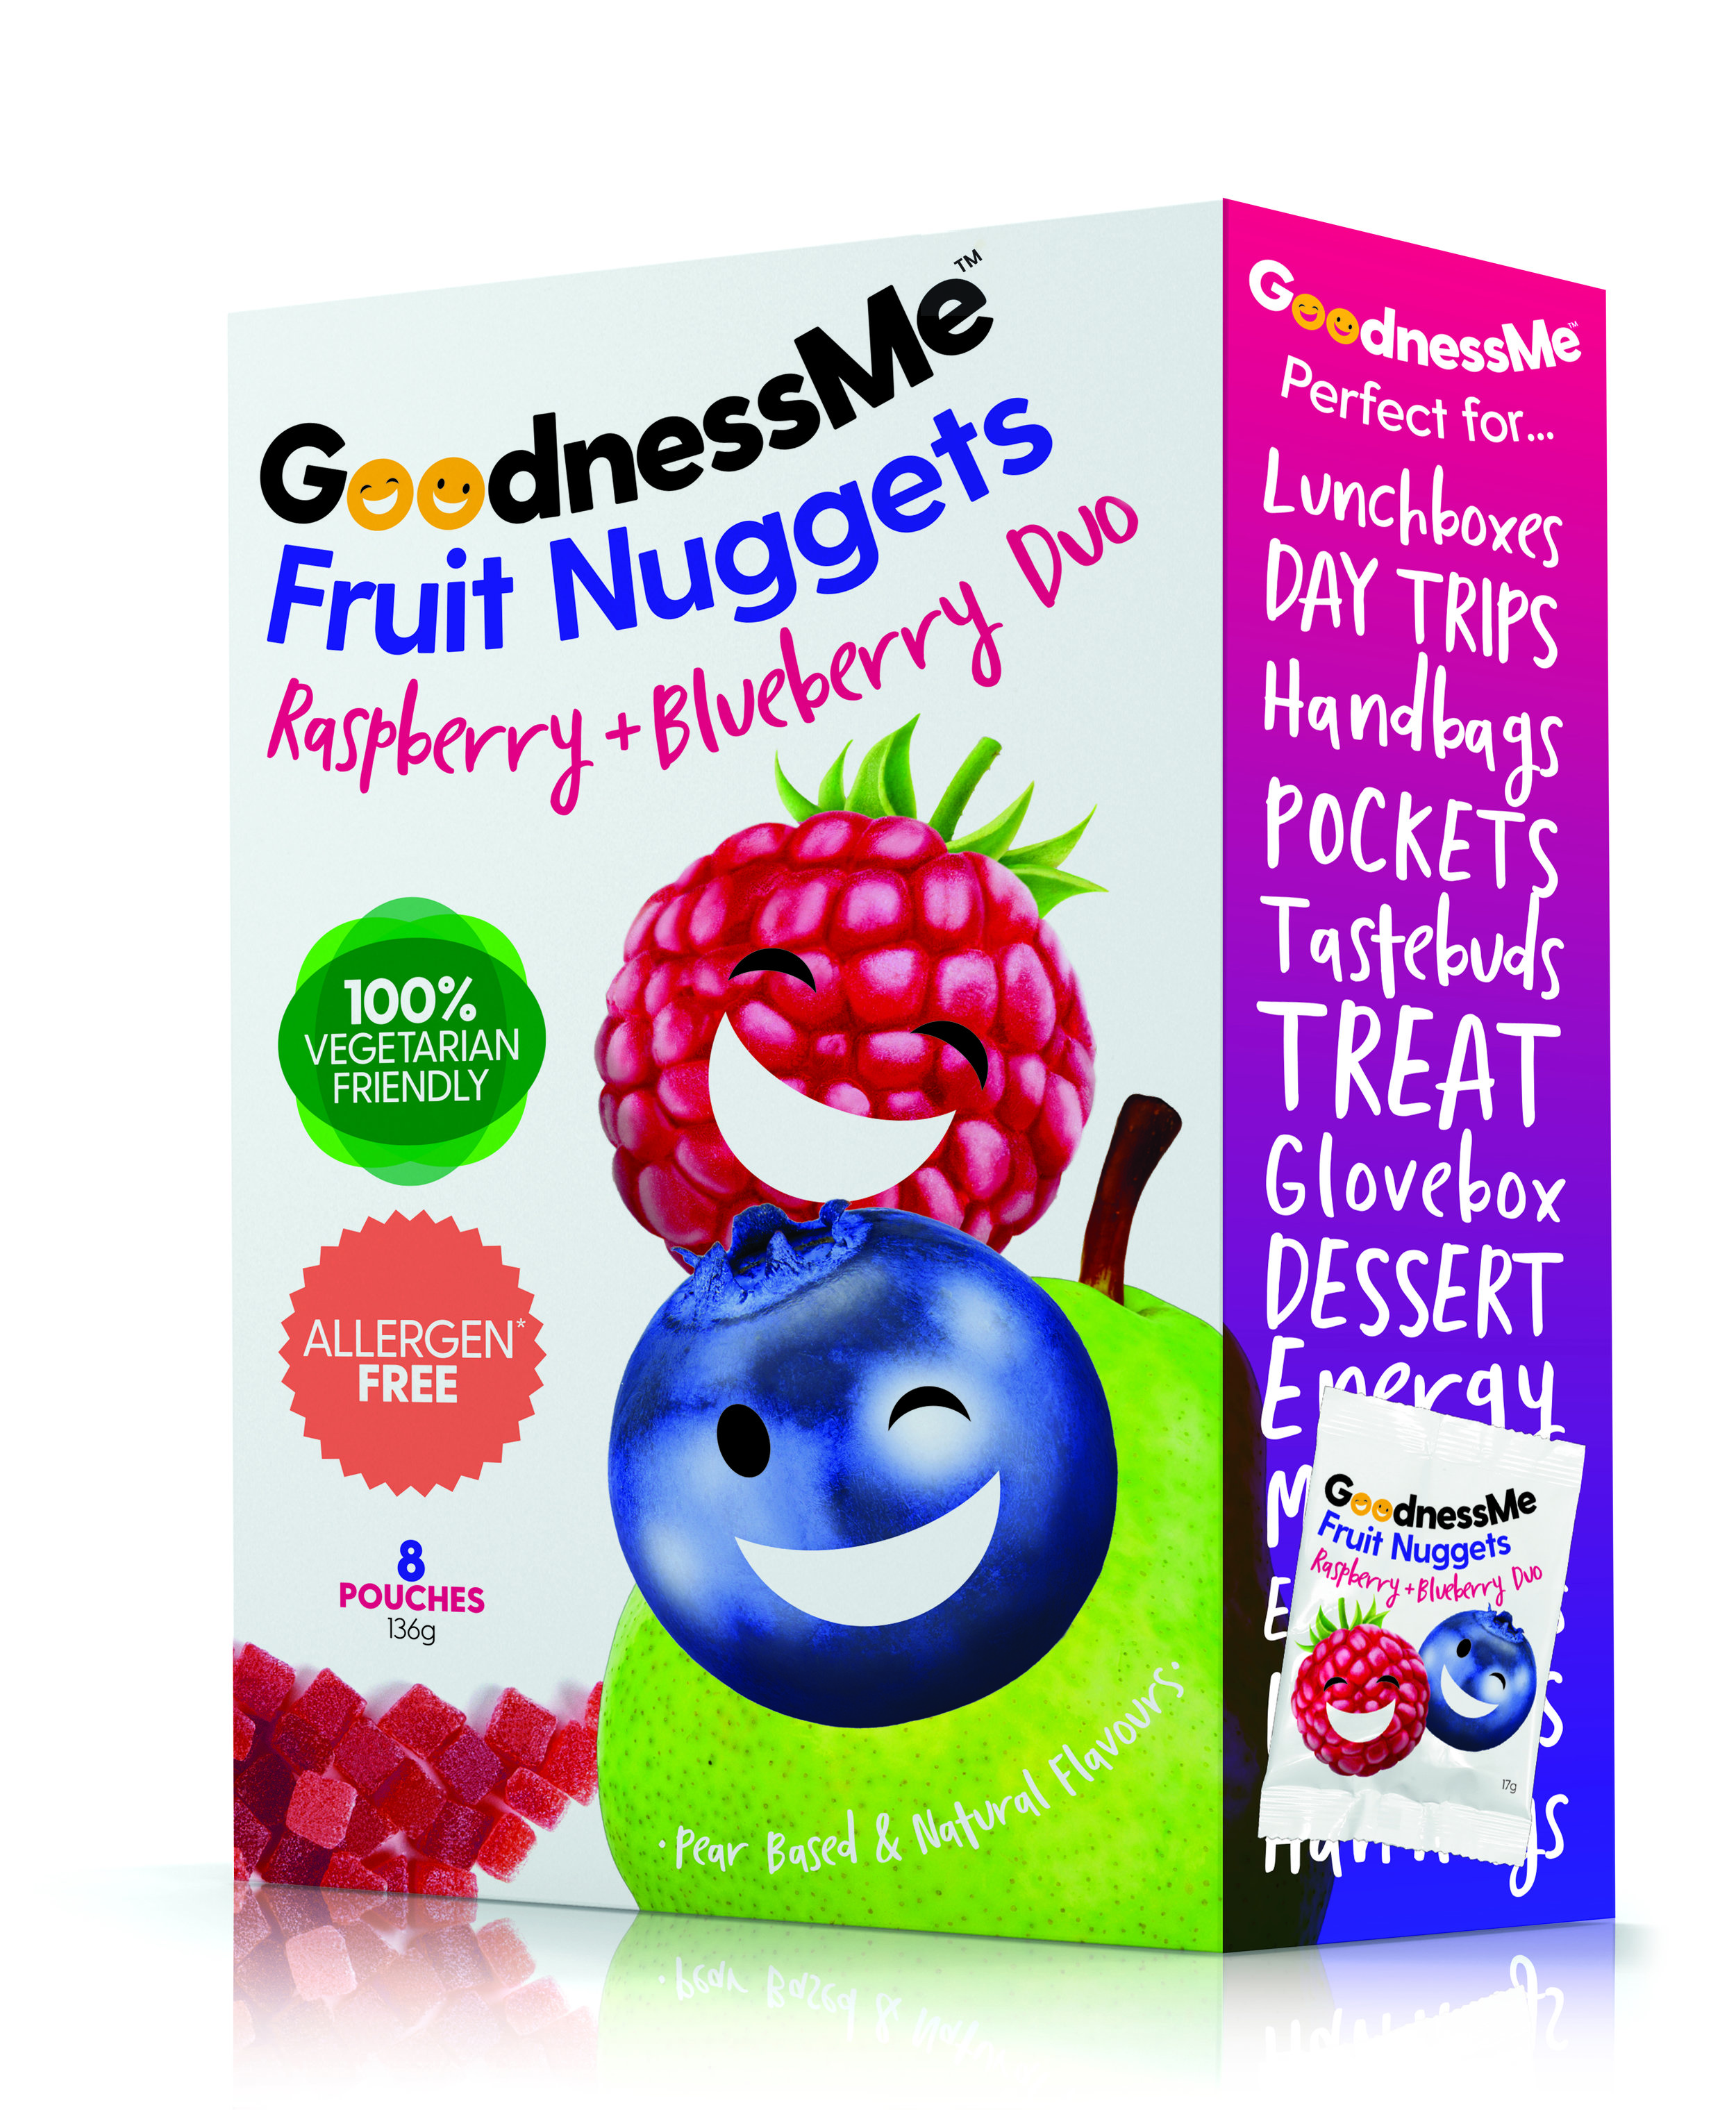 NZGF-GoodnessMe-Fruit-Nuggests-Pack-Raspberry-Blueberry.jpg